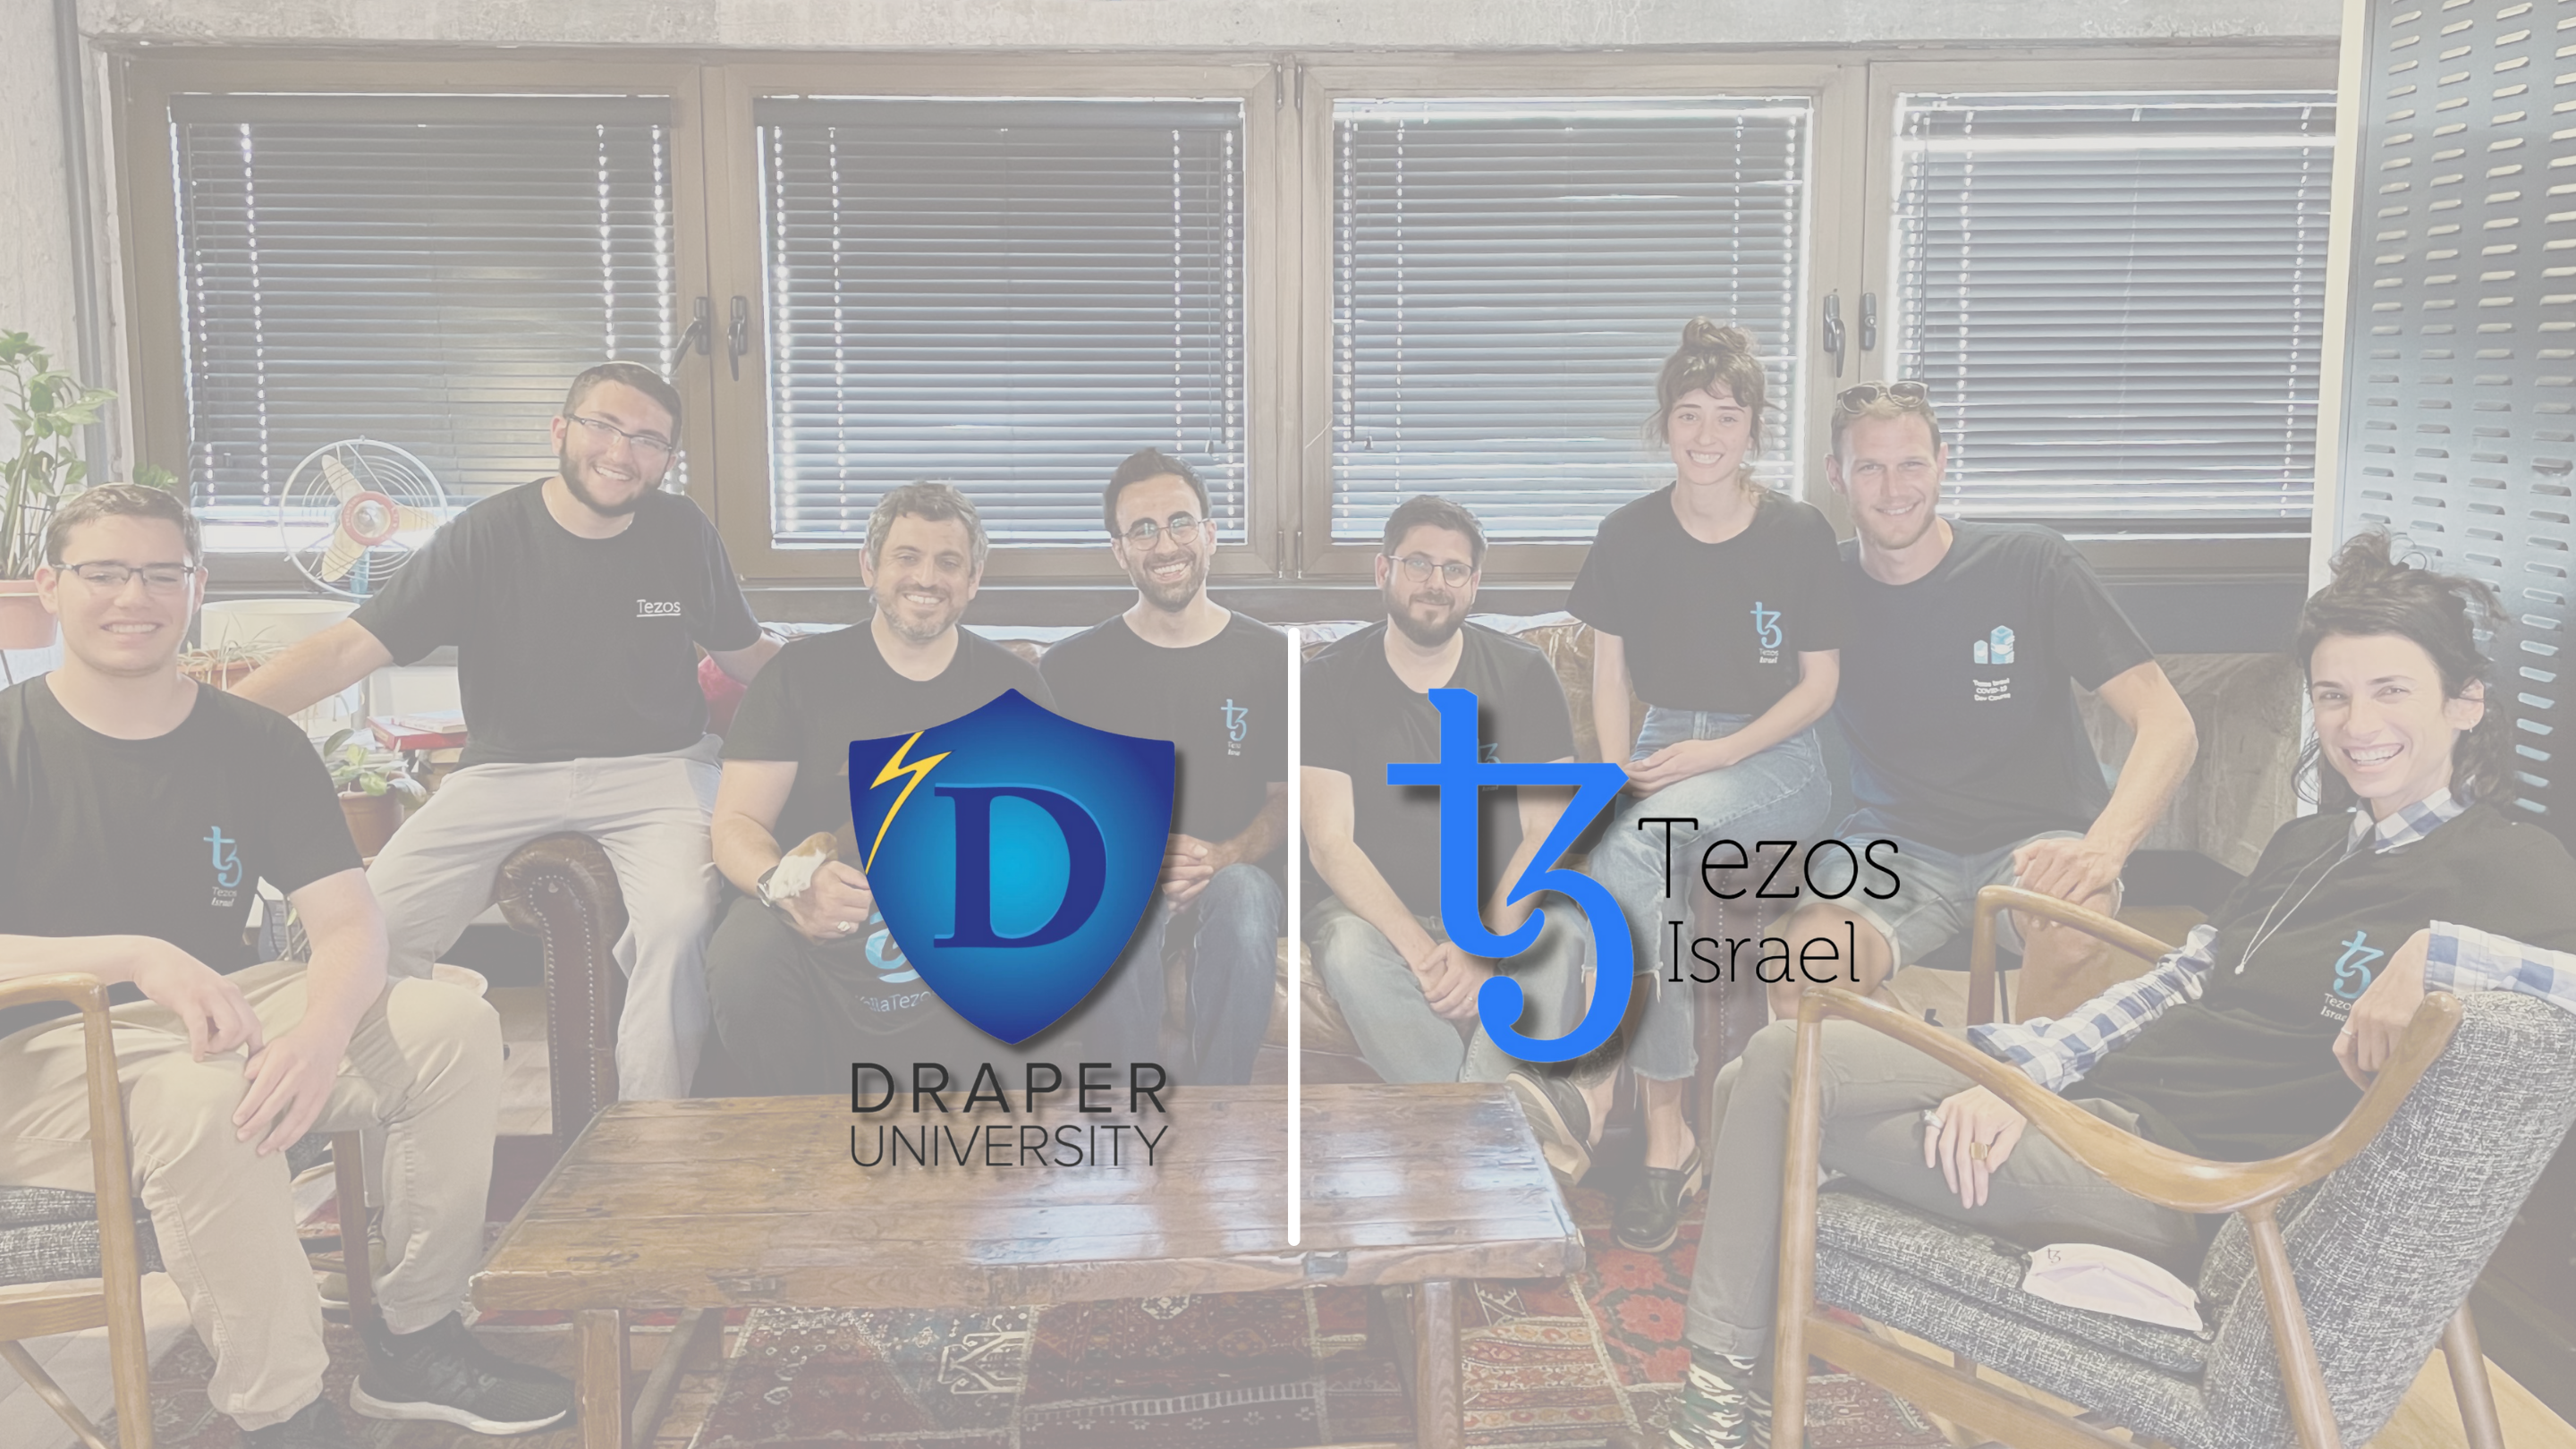 Tezos Israel and Draper University Collaborate to Empower Blockchain Startups